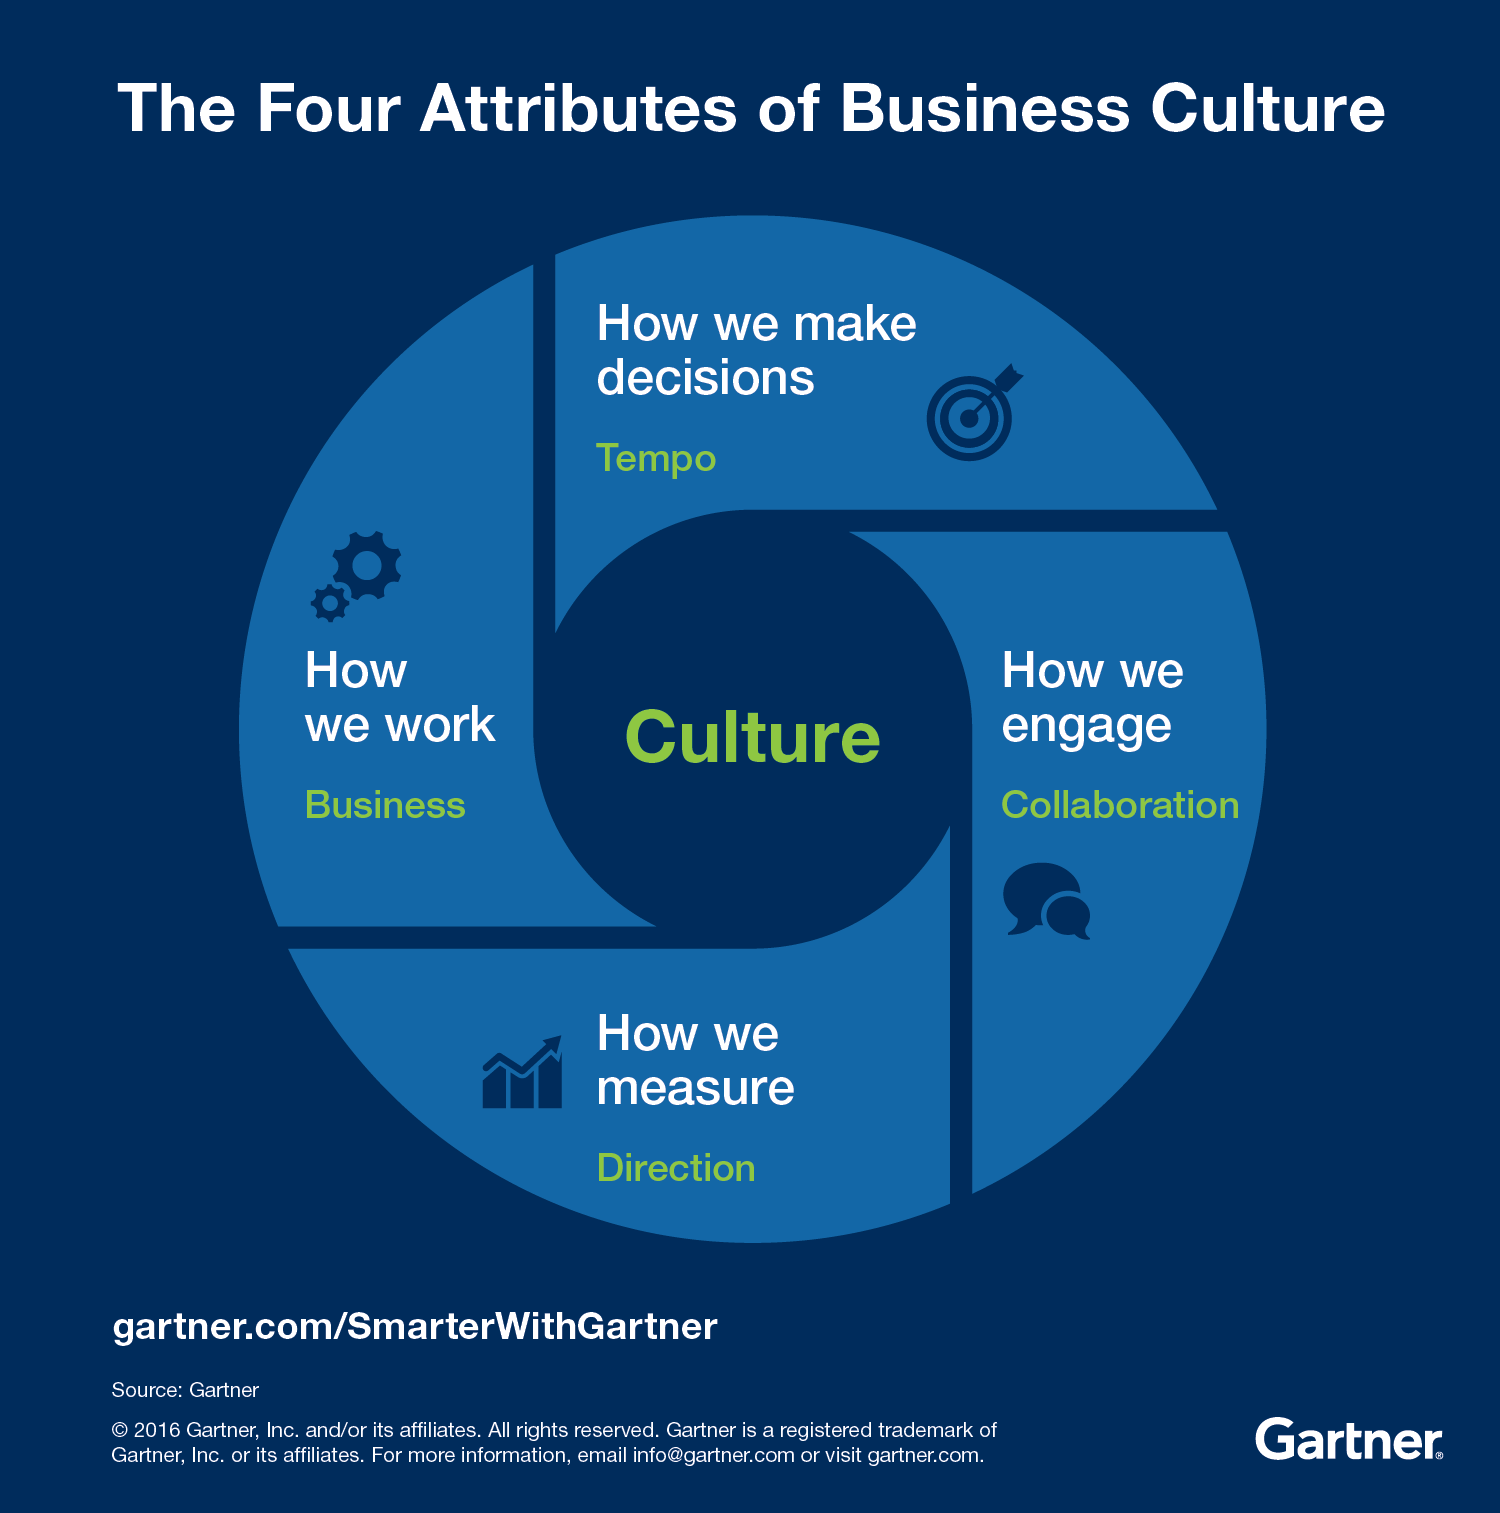 Gartner defines the four attributes of business culture.